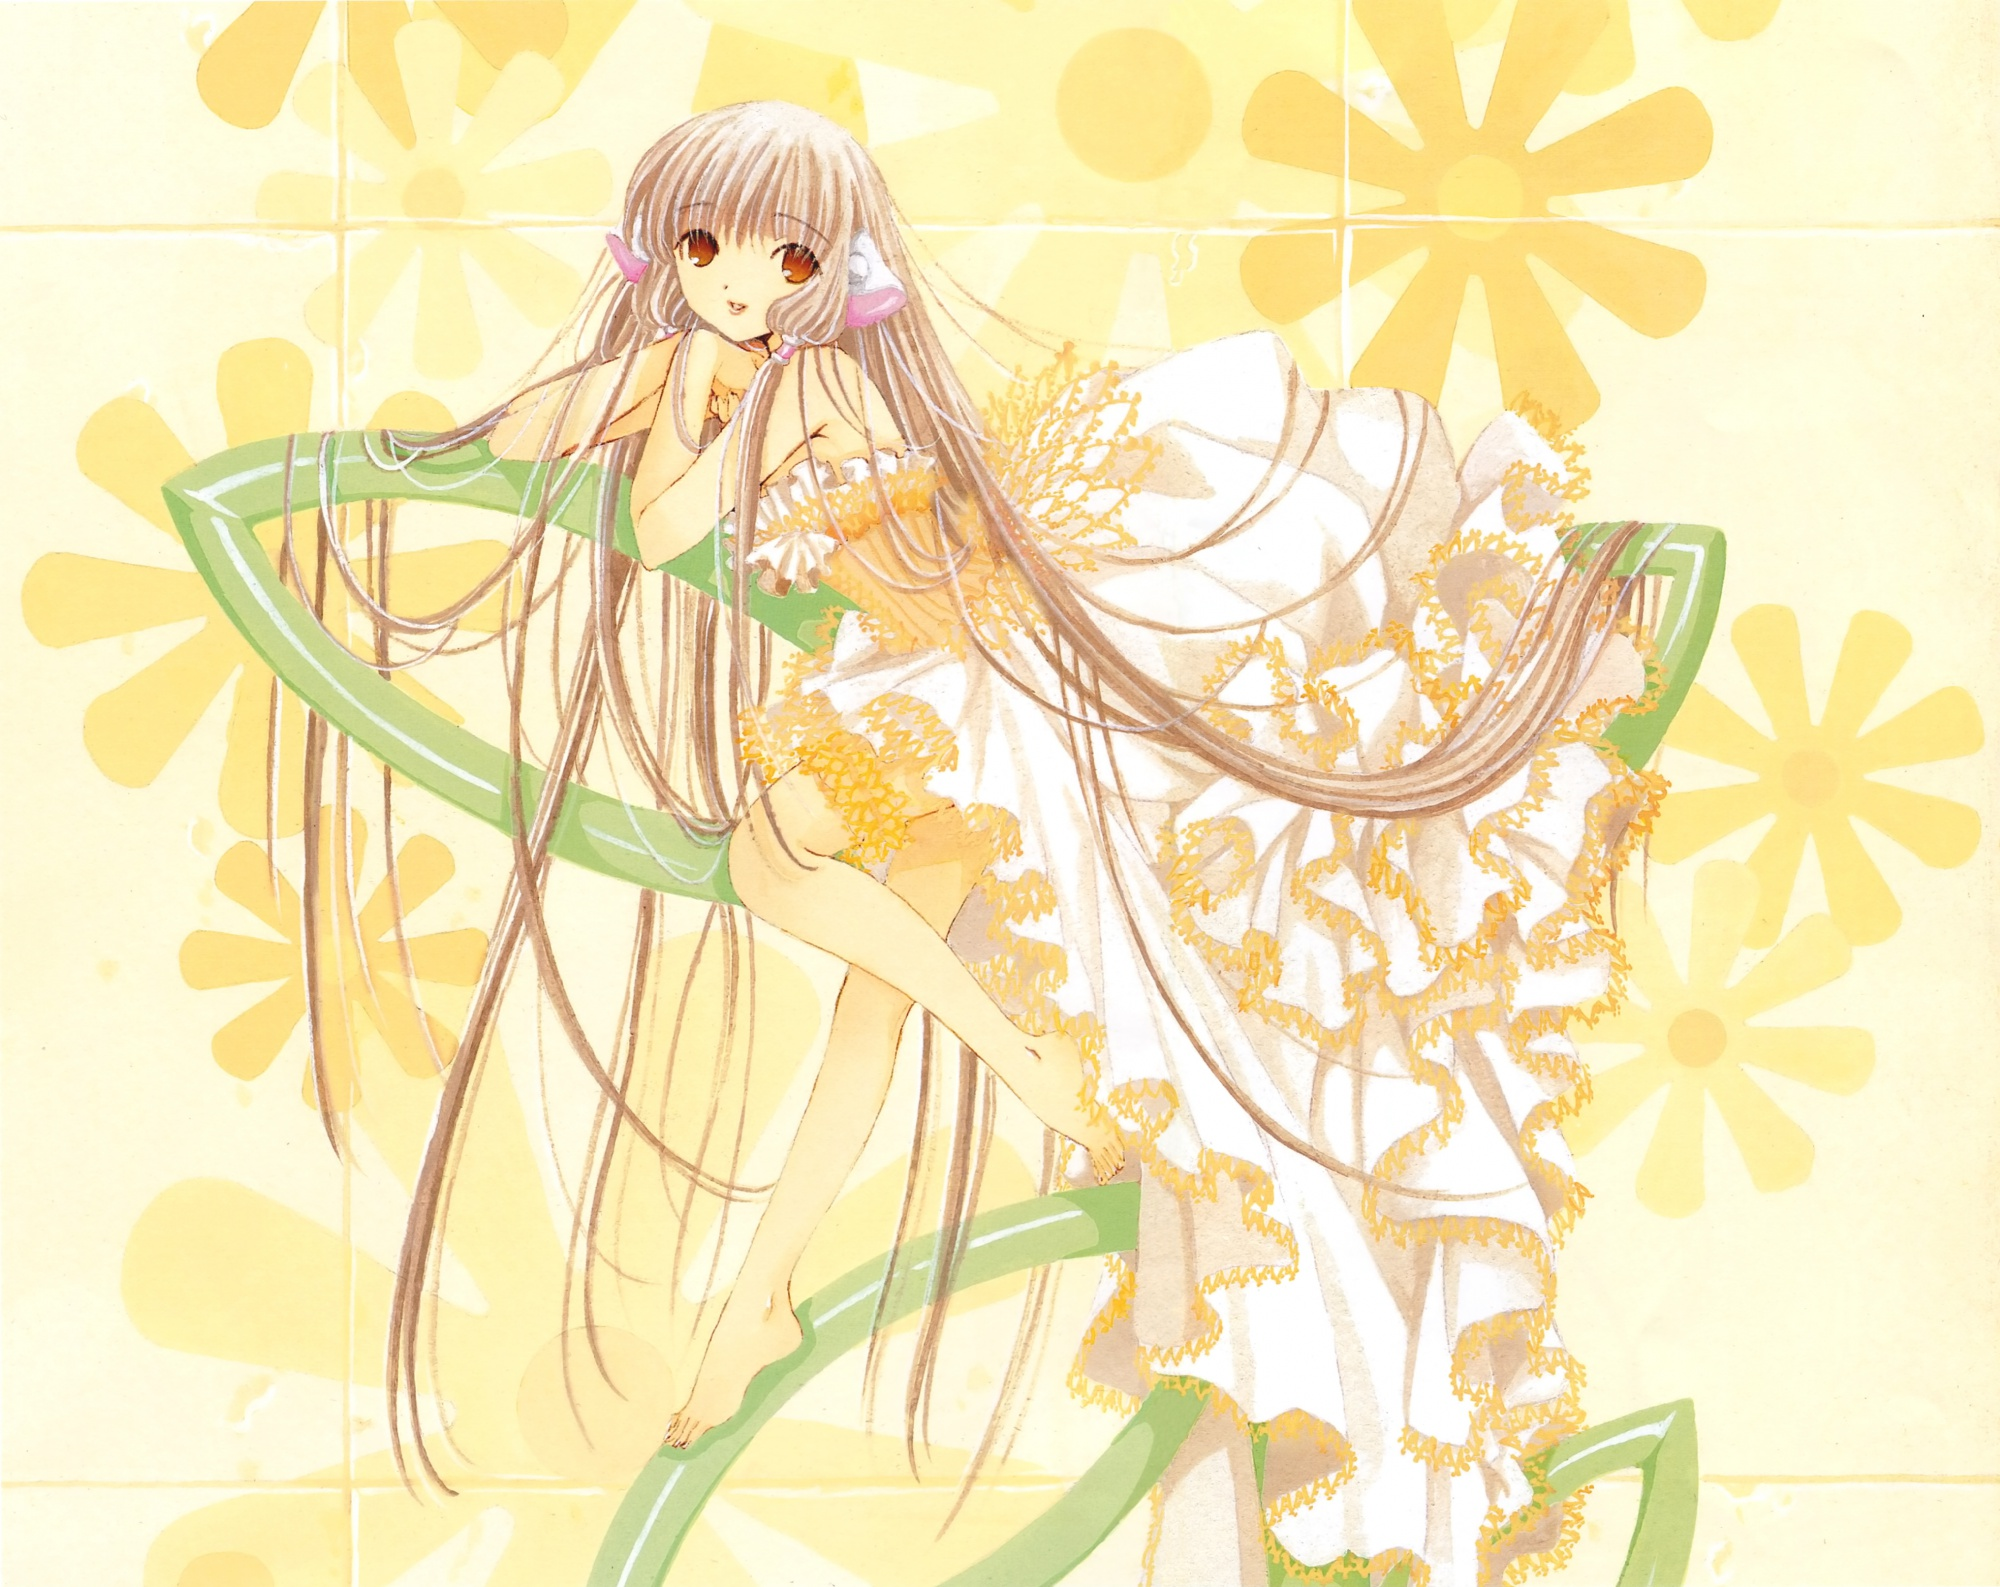 chii chobits clamp scan yellow